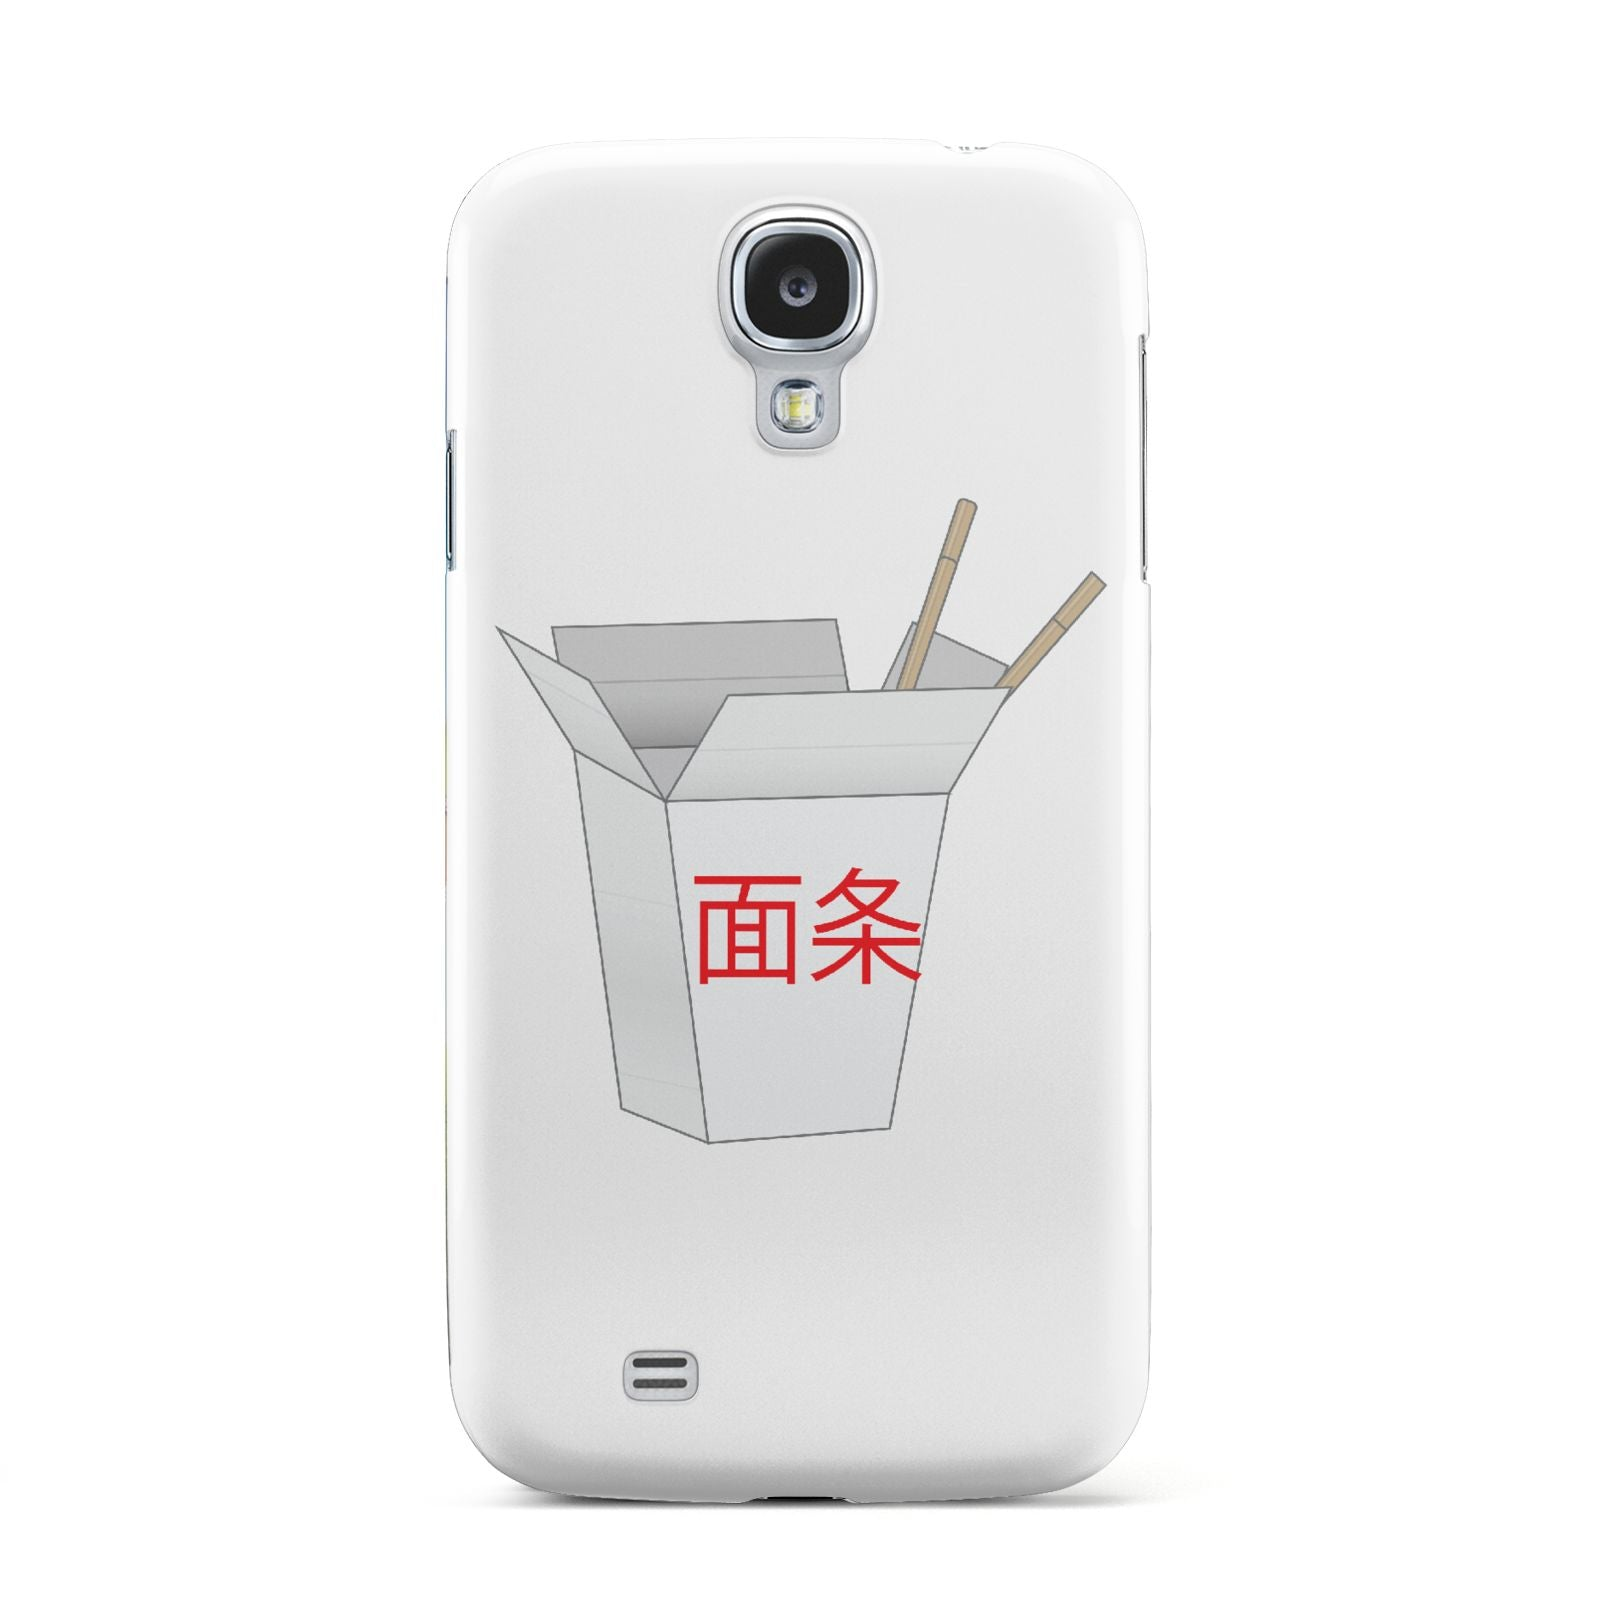 Chinese Takeaway Box Samsung Galaxy S4 Case